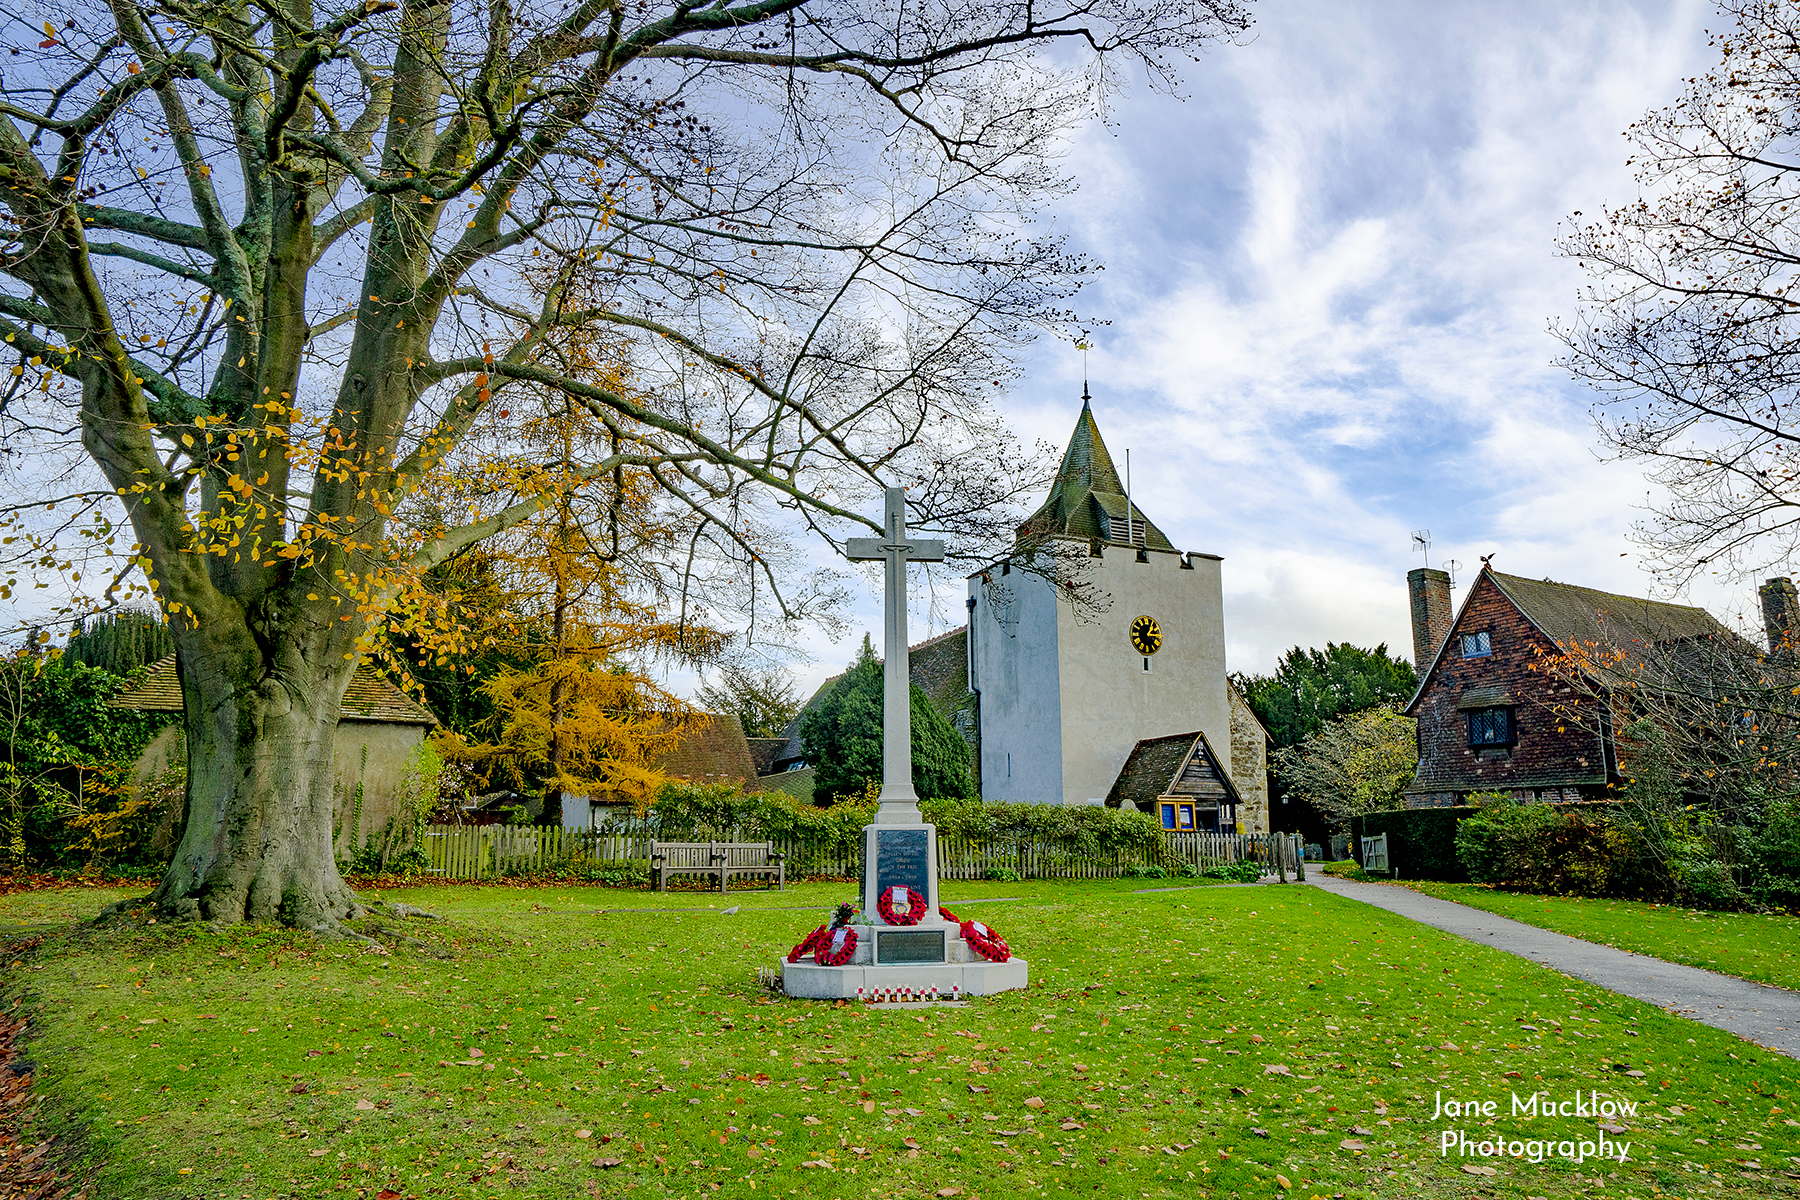 Photo of St. Bart's and the war memorial with poppies, by Jane Mucklow